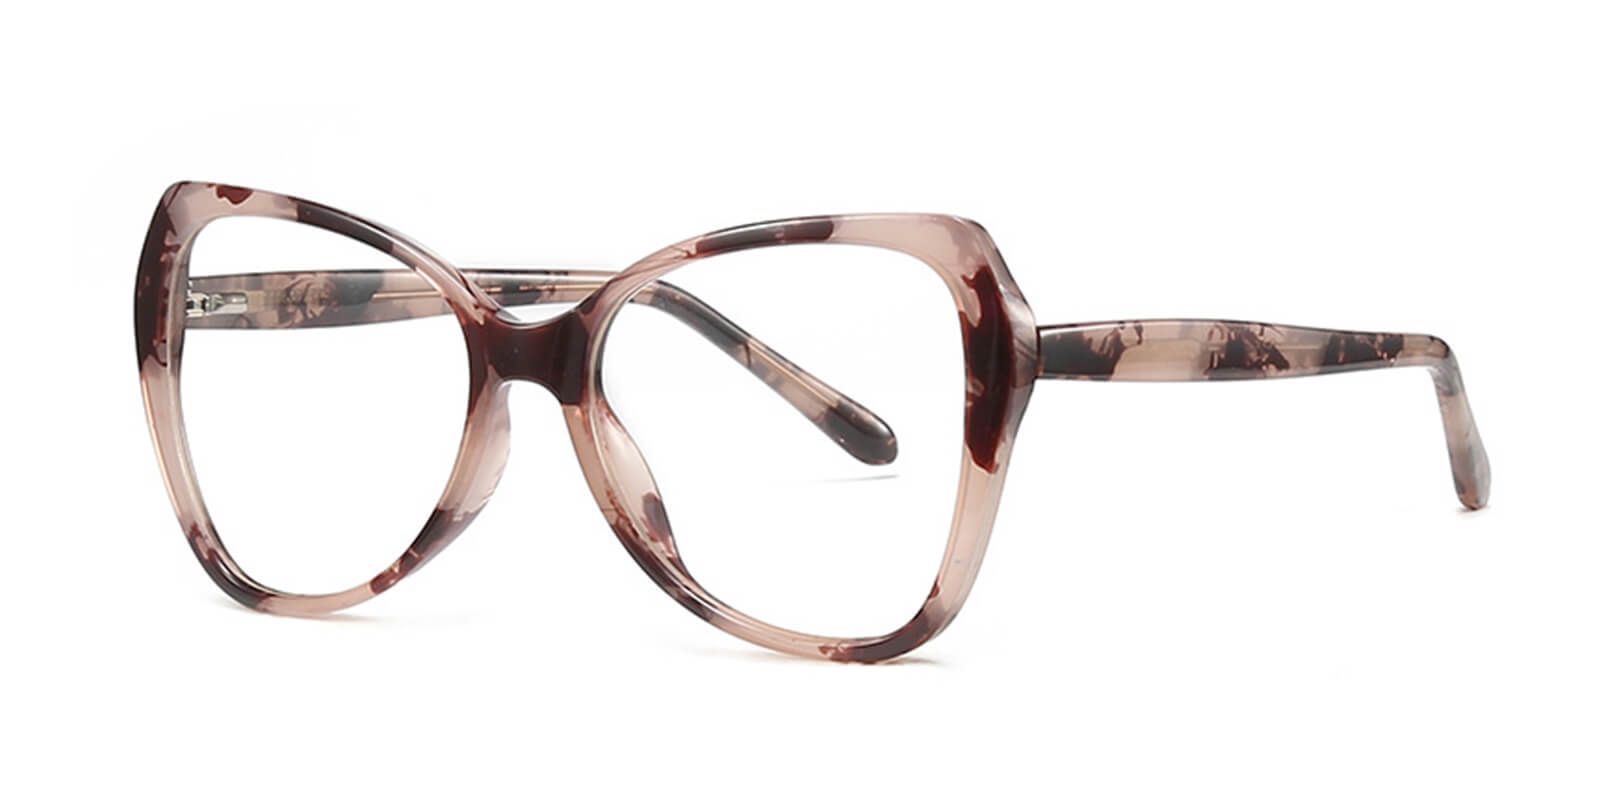 Esme-Cute glasses for women with Polygonal spring hinge